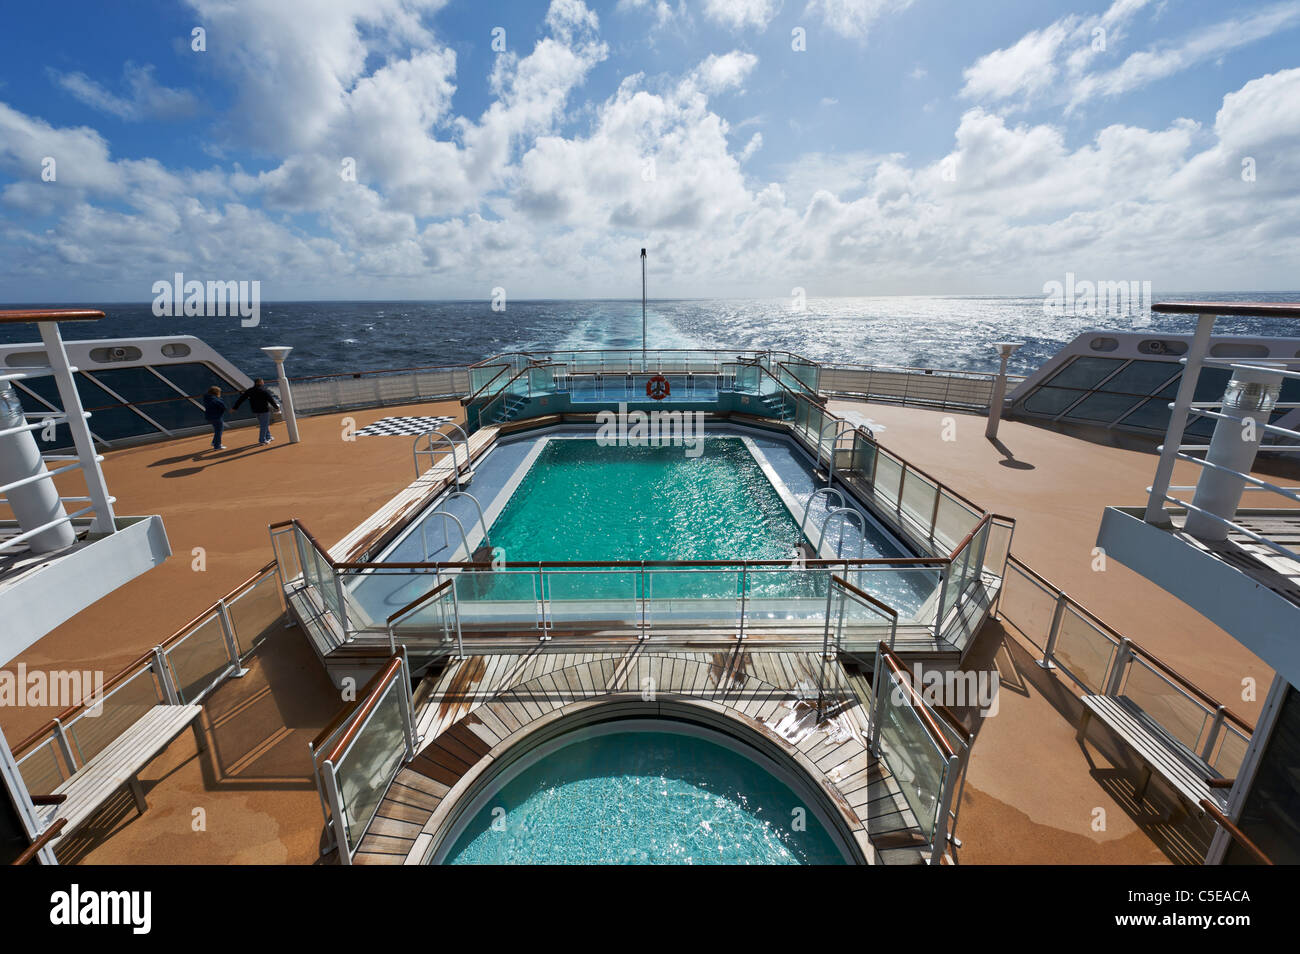 swimming pool on stern of cunard stern of queen mary 2 cruise liner stock photo royalty free